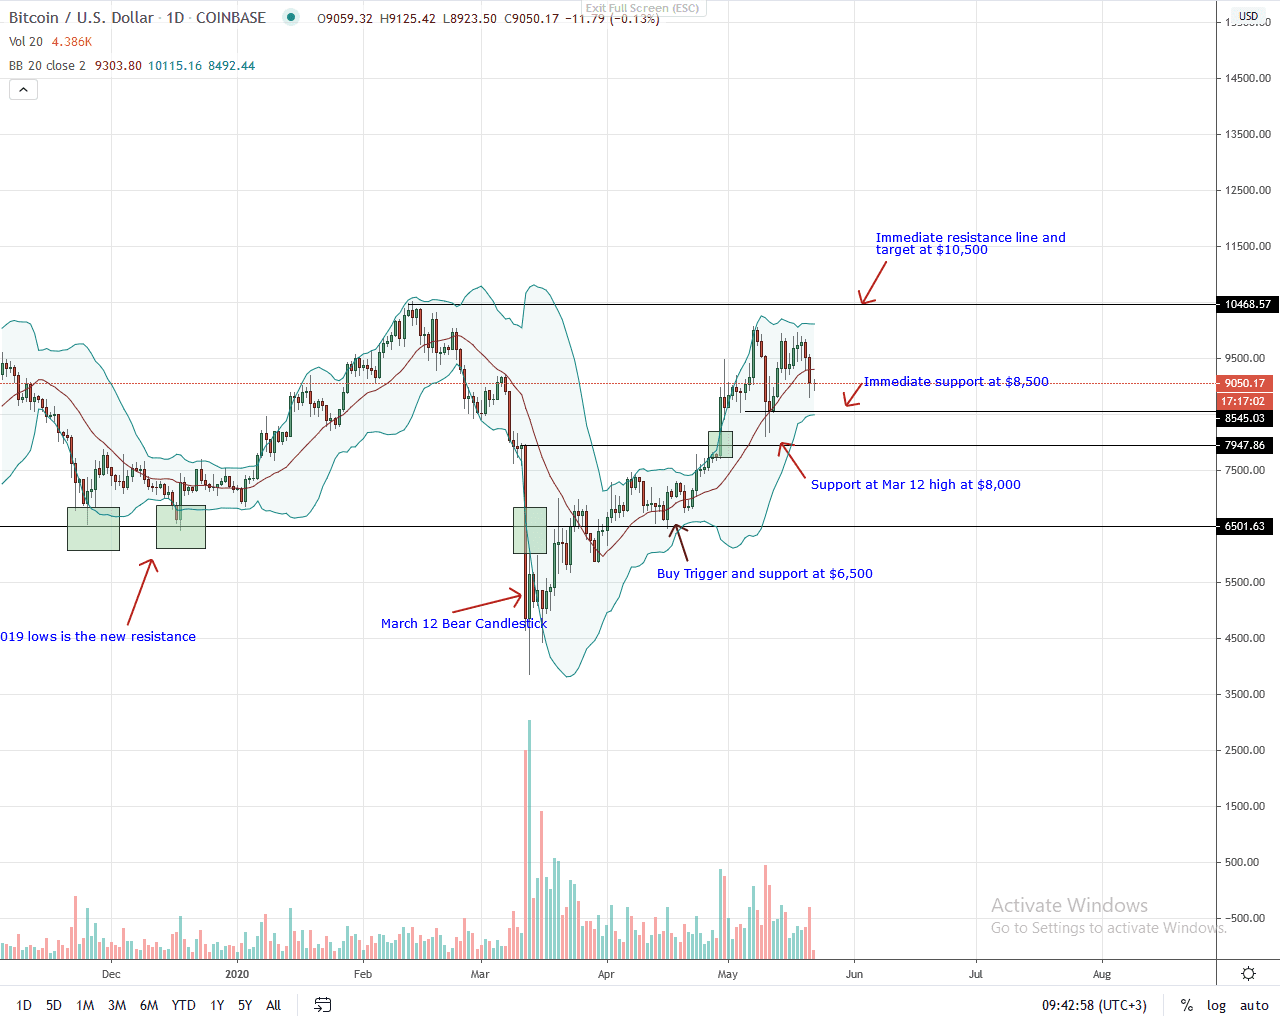 Bitcoin Daily Chart for May 22